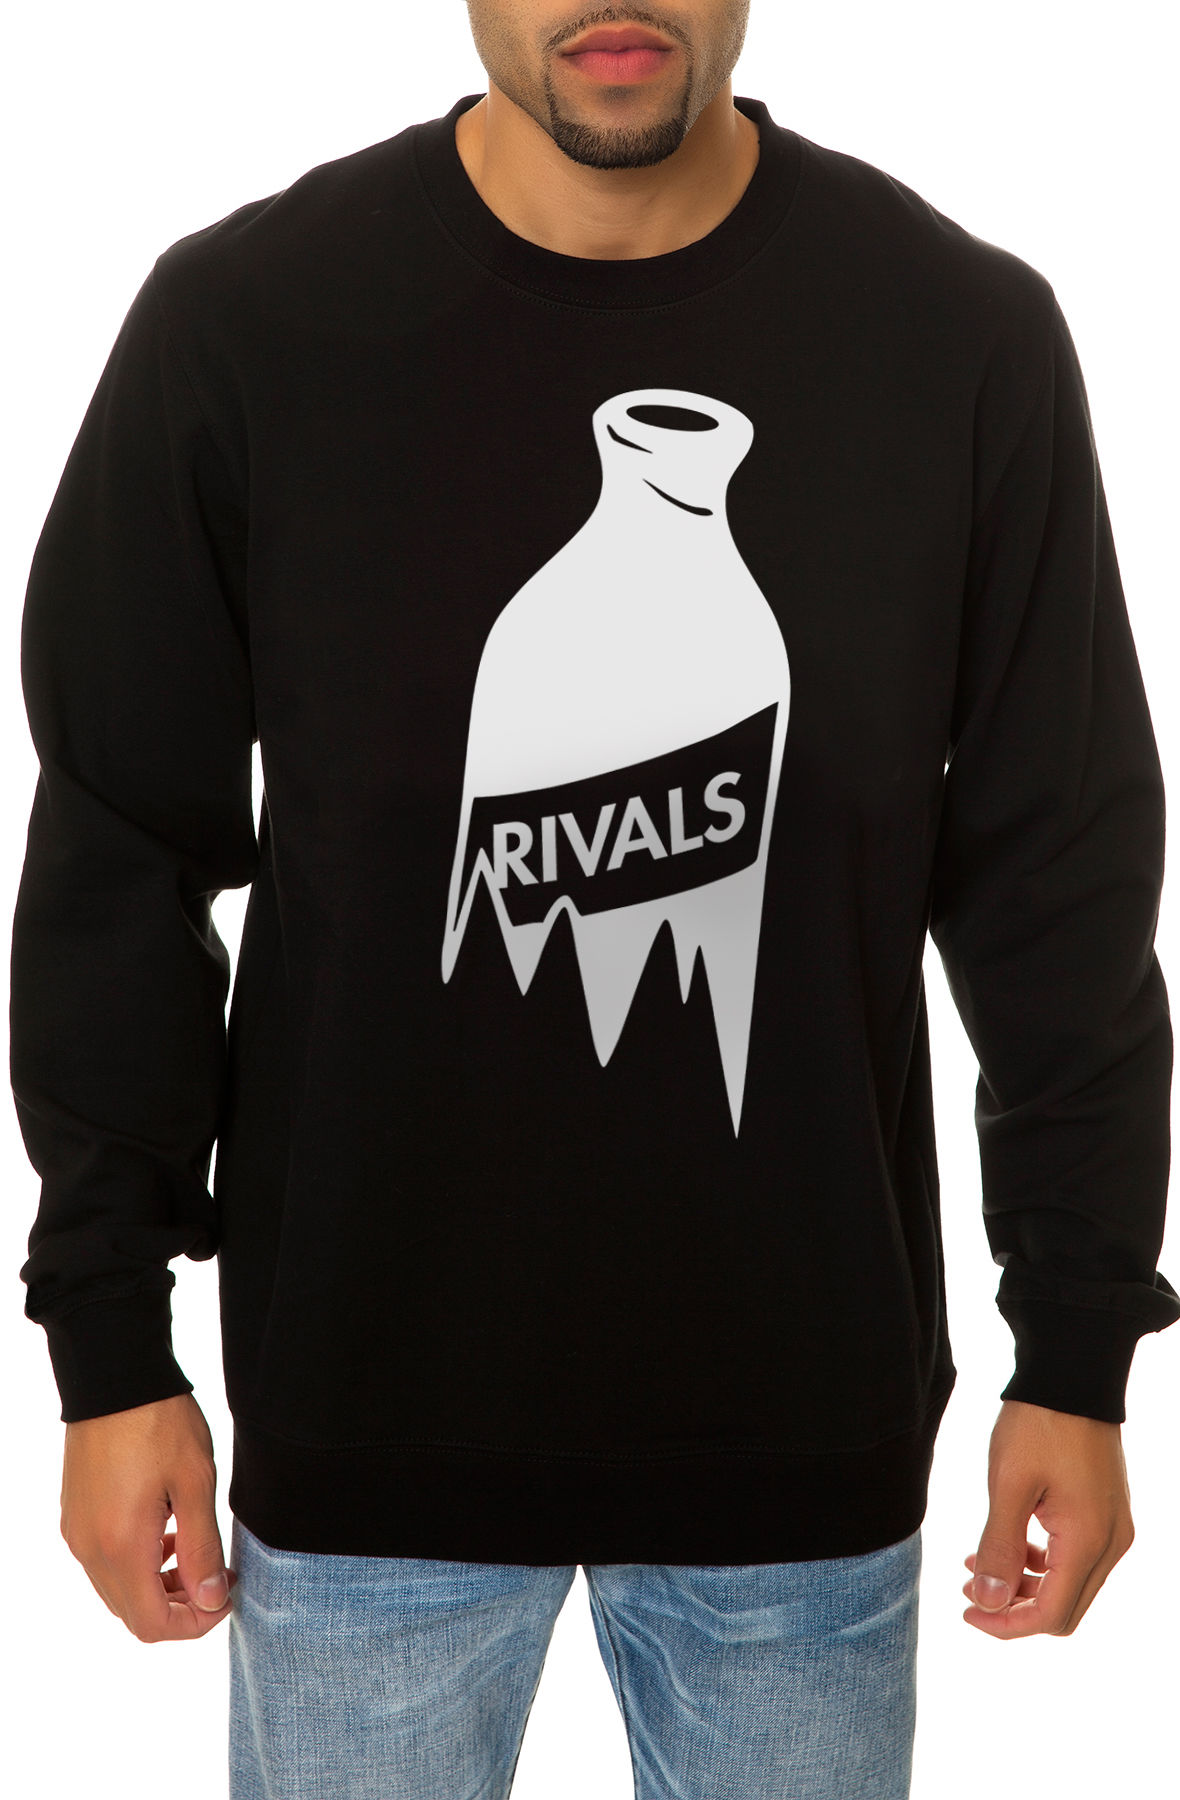 Image of The Bar Fight Crewneck Sweatshirt in Black